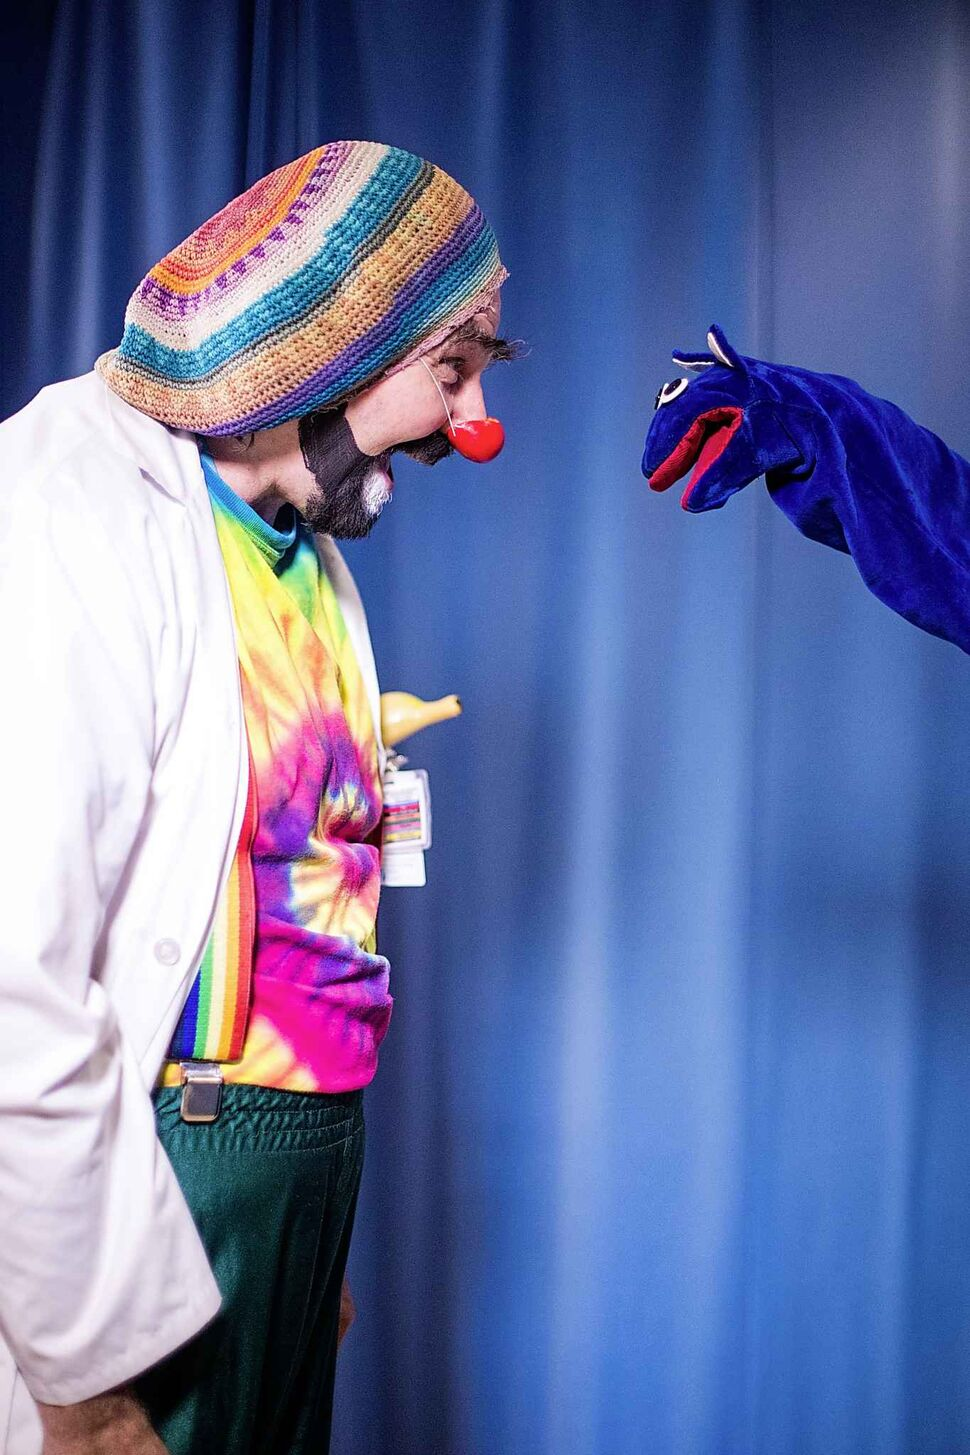 MIKAELA MACKENZIE / WINNIPEG FREE PRESS</p><p>August 8 — David Langdon, therapeutic clown, poses for portraits as Onri with puppet Noname at The Good Day Show studio at the Children's Hospital. The daily live show has been running for over 30 years exclusively for the dozens of kids staying at the facility.</p>